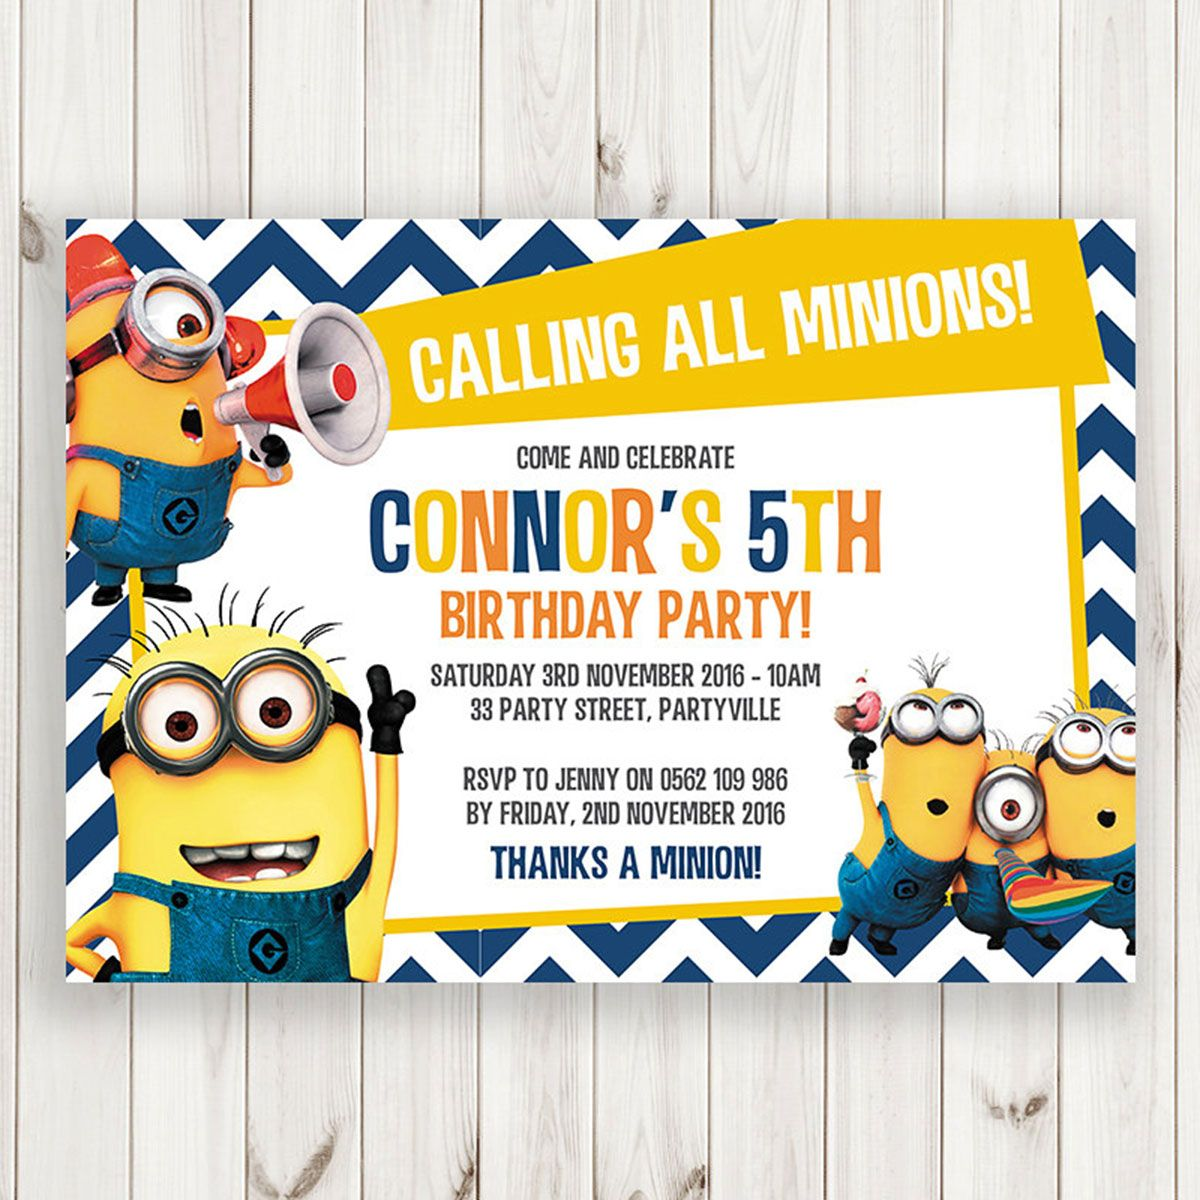 Minion Invitations Template | Printable Blue Chevron Calling All Minions Birthday Invitation